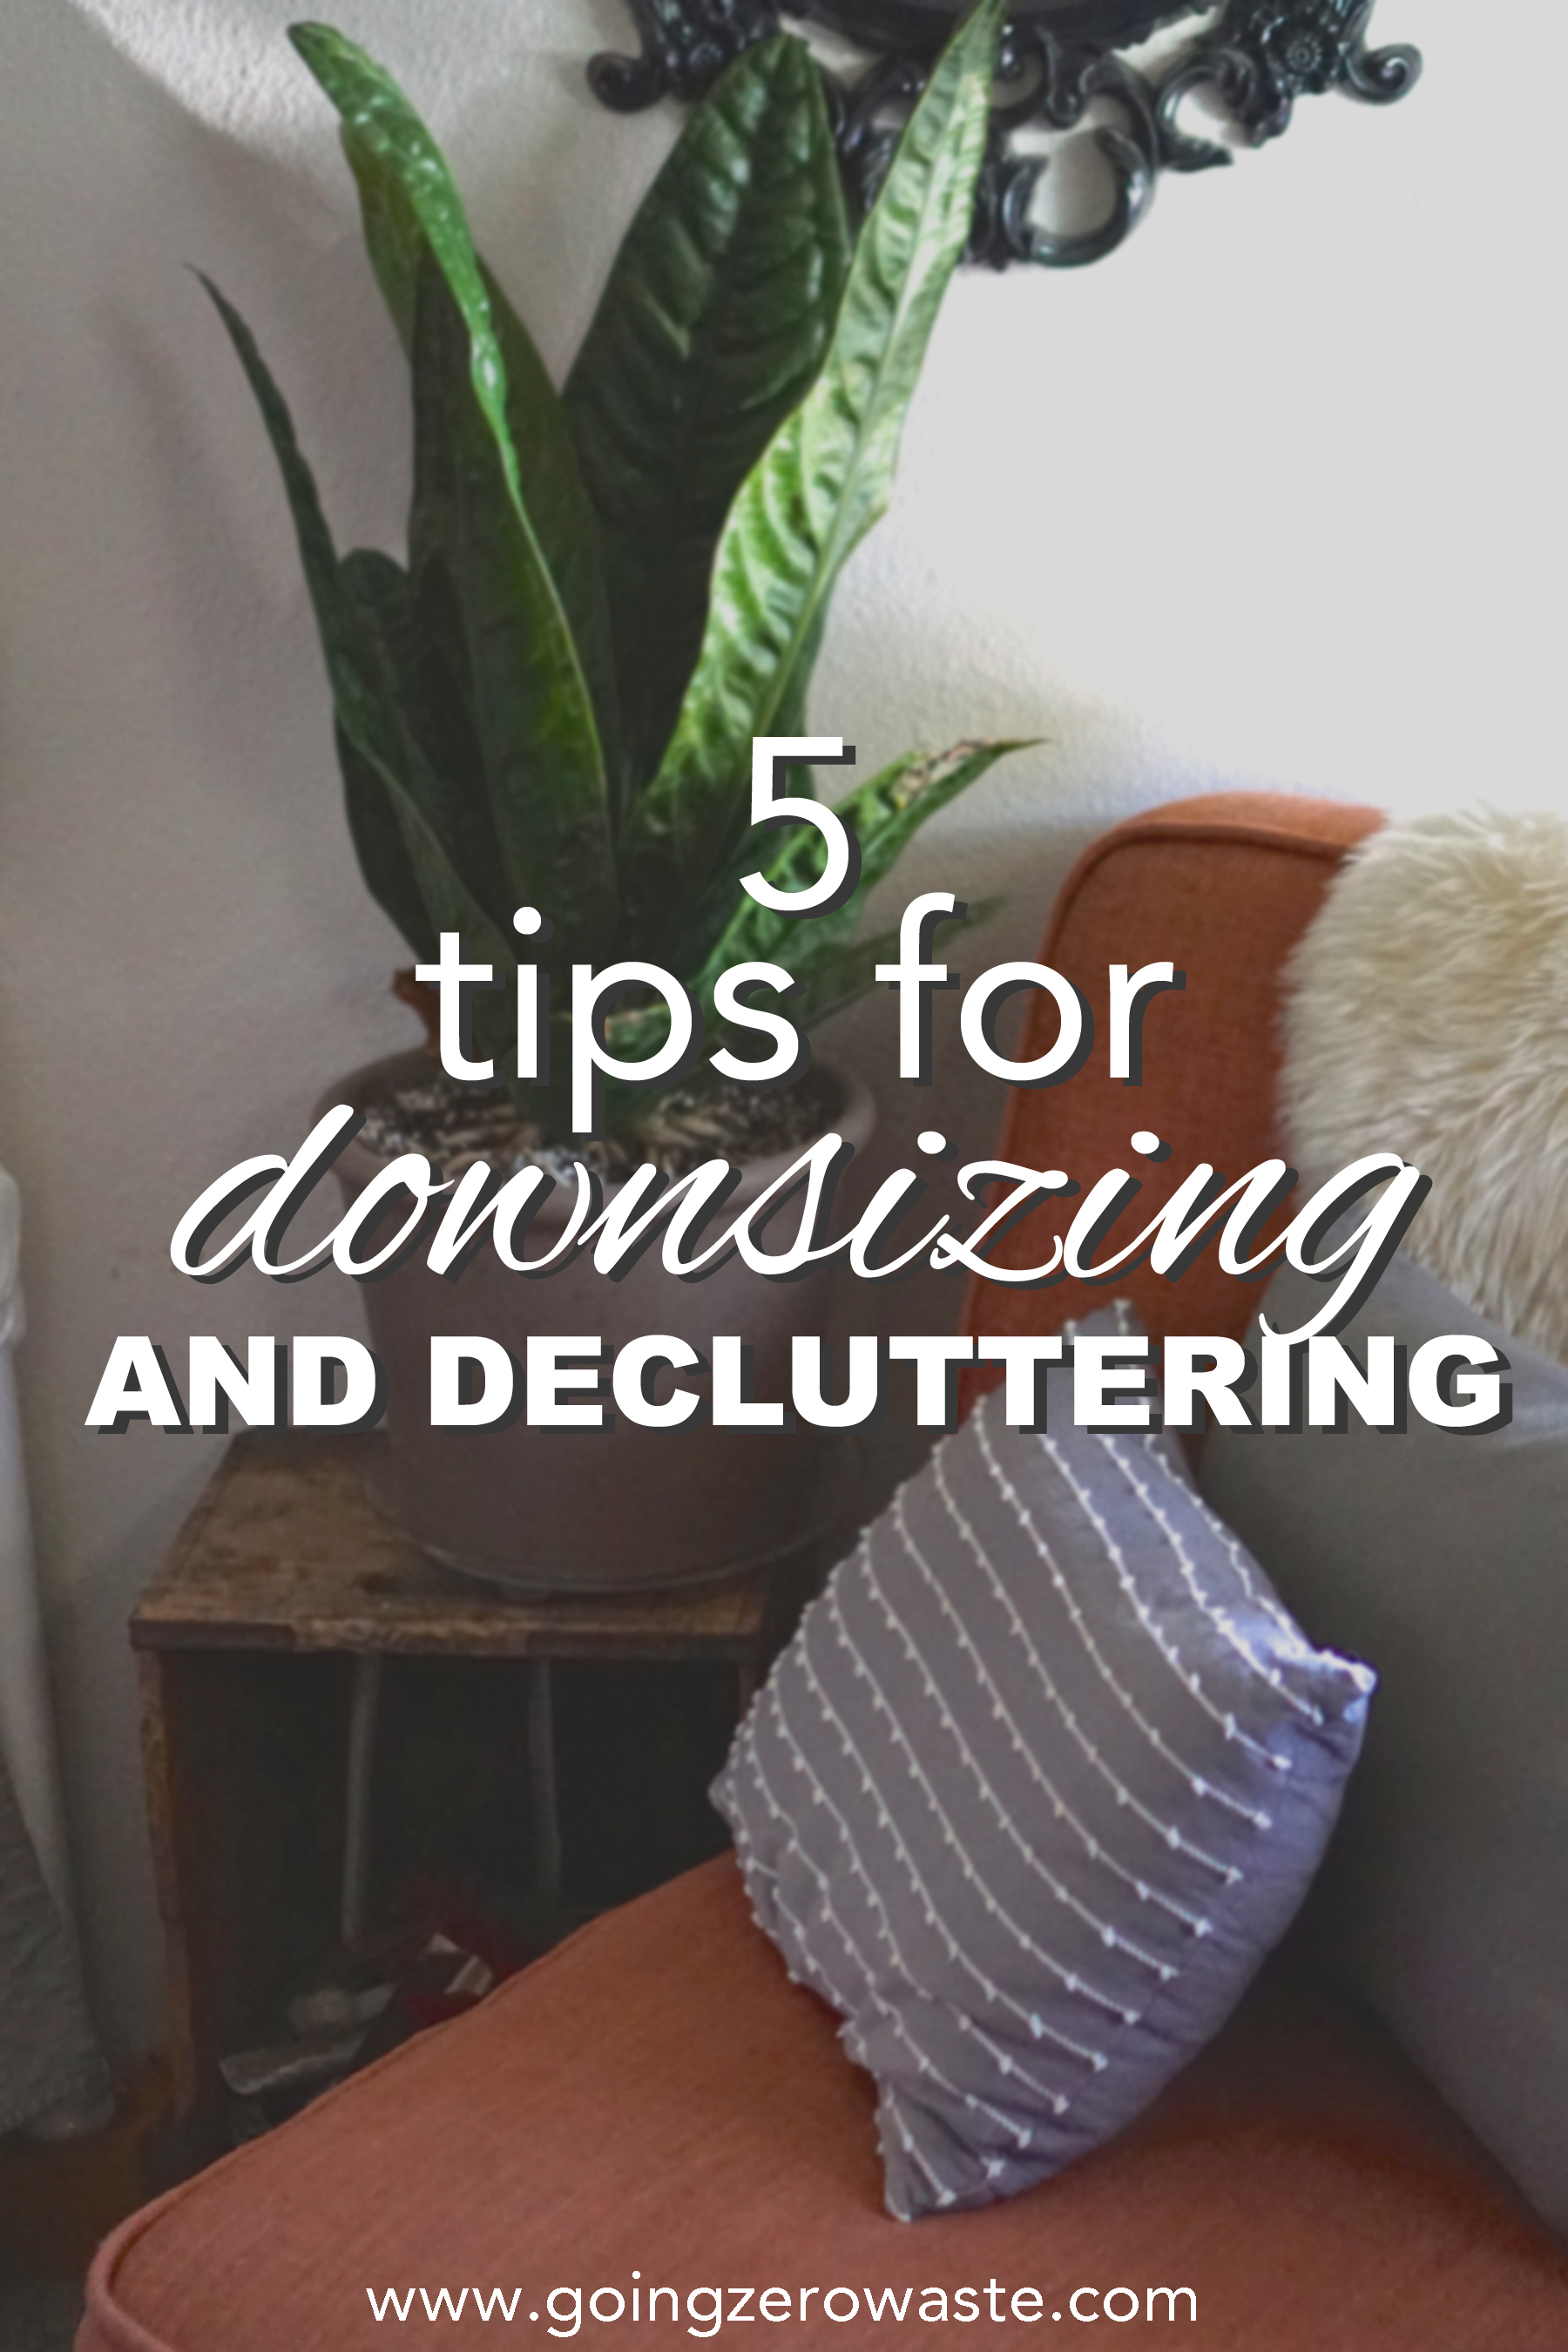 Five tips for downsizing and decluttering from www.goingzerowaste.com